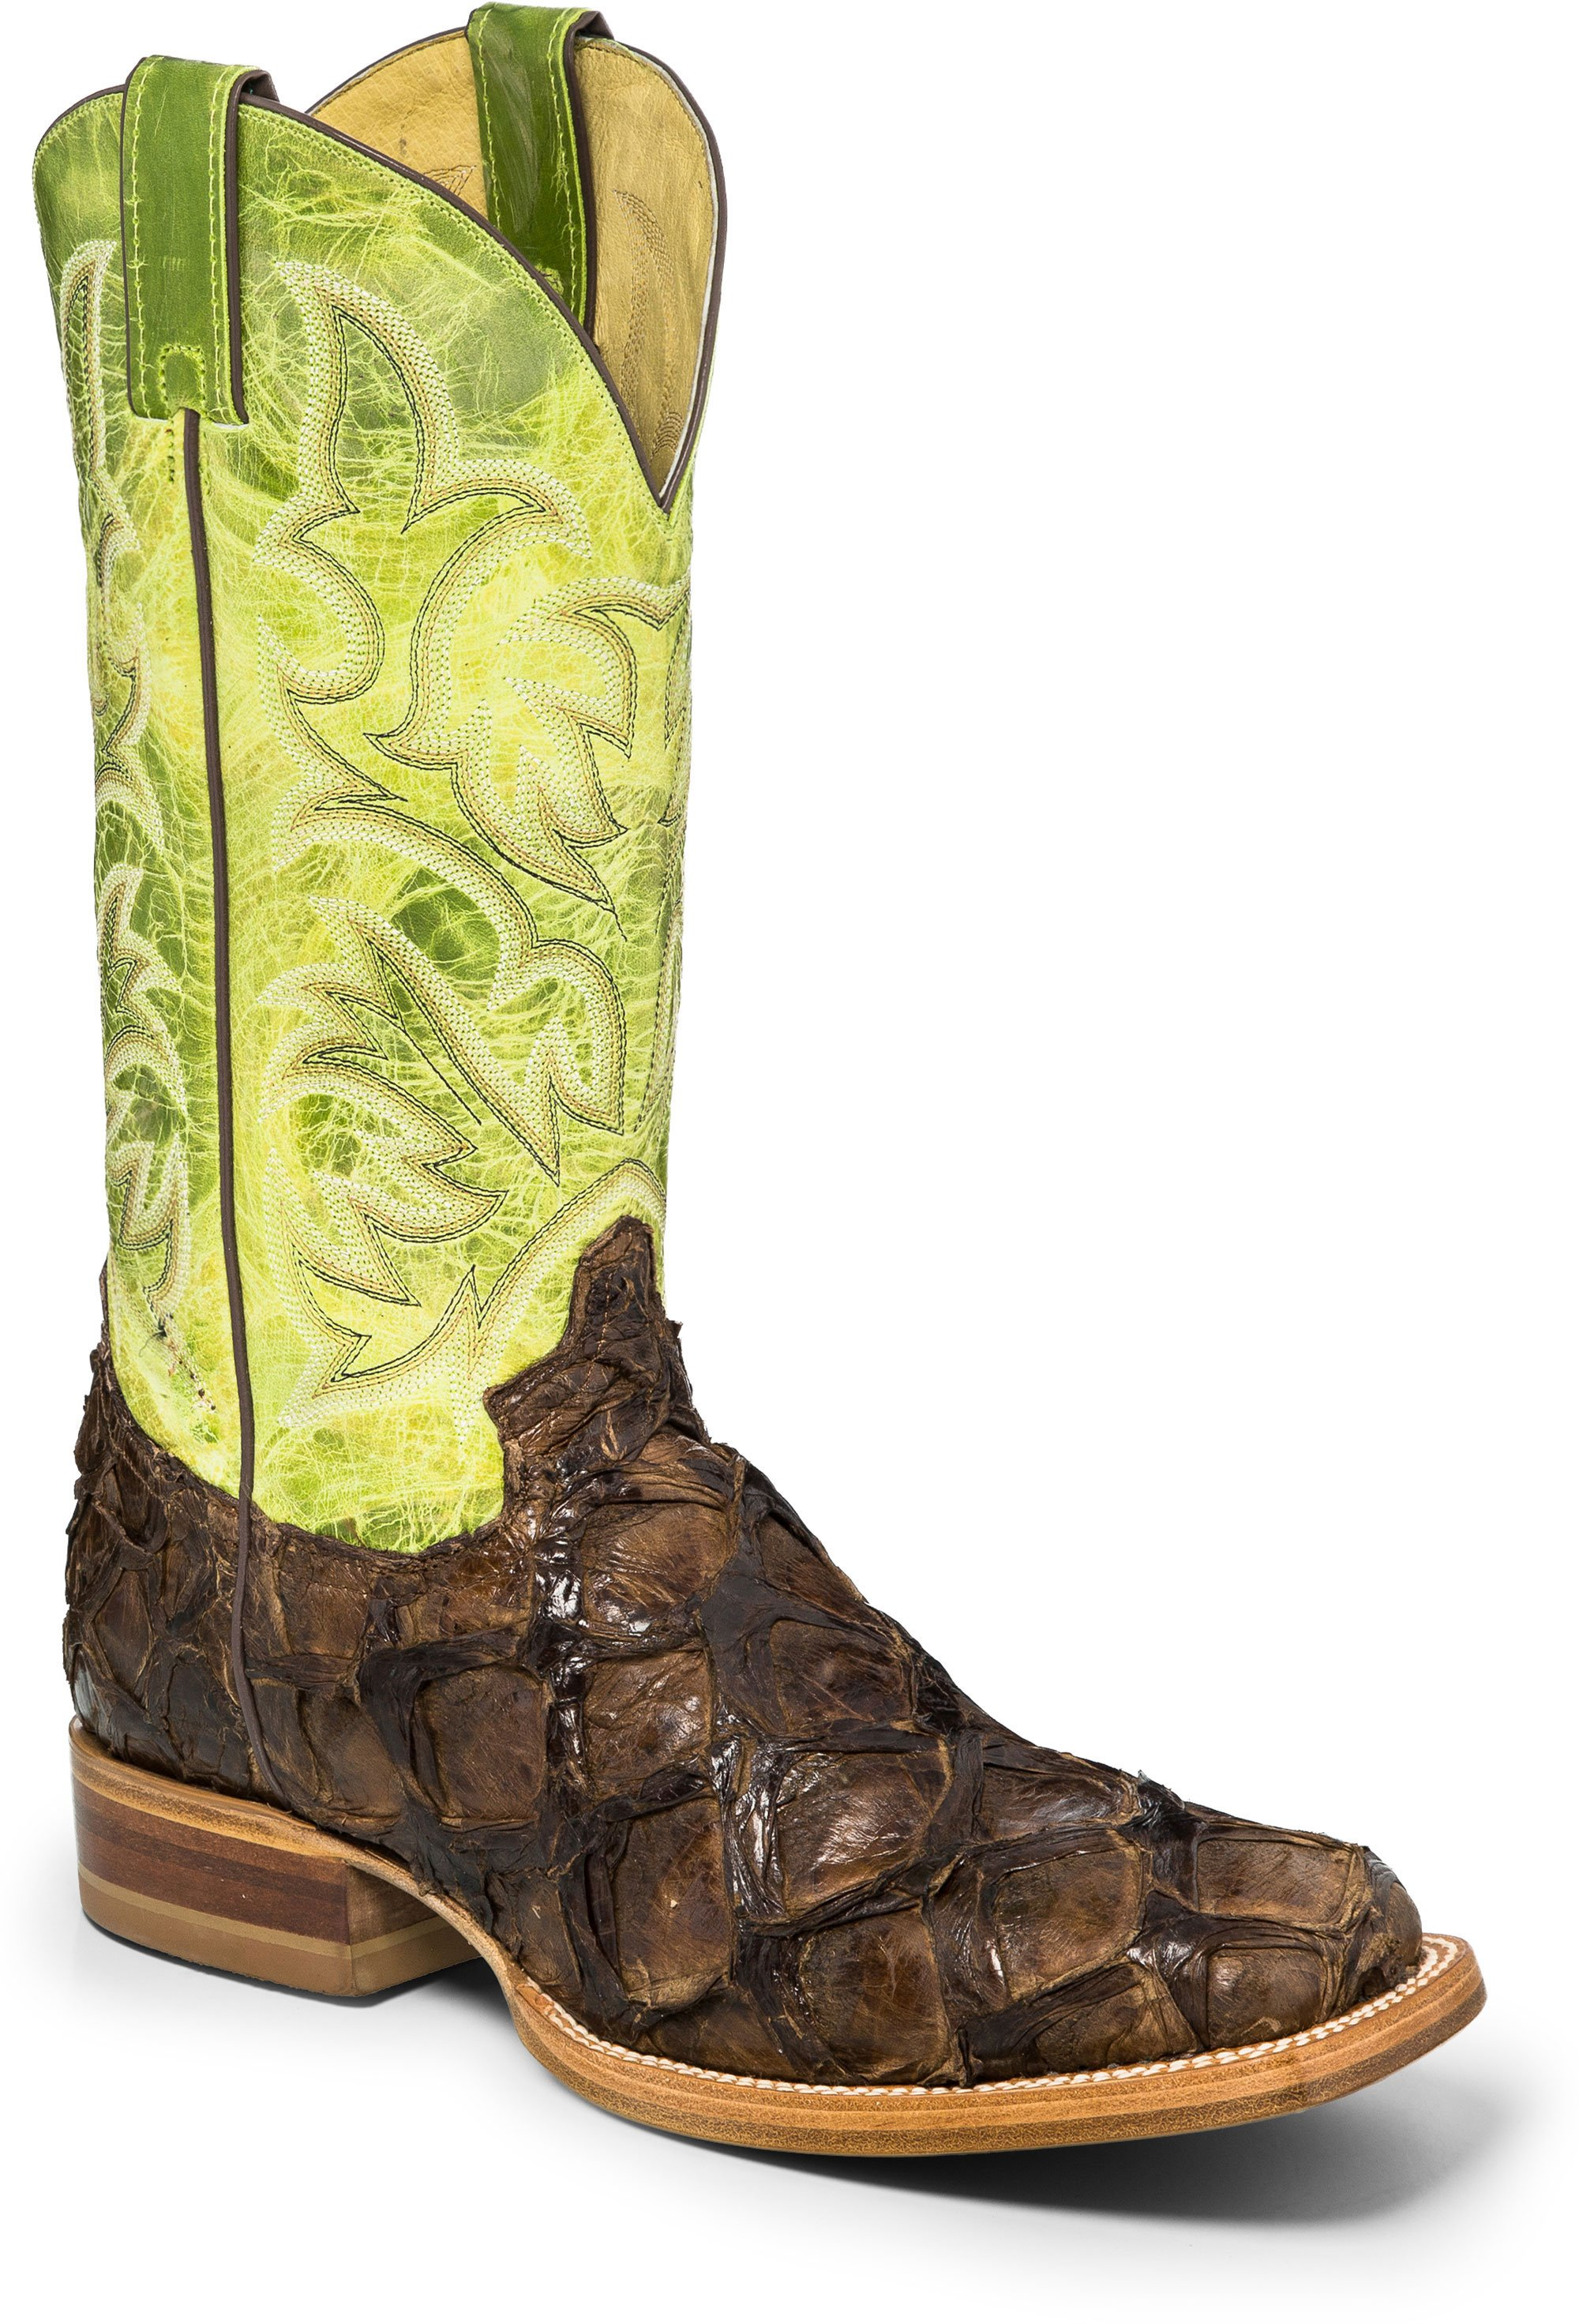 7f8bea326df JUSTIN BOOTS #CX1000 NIGHTLIFE LIME